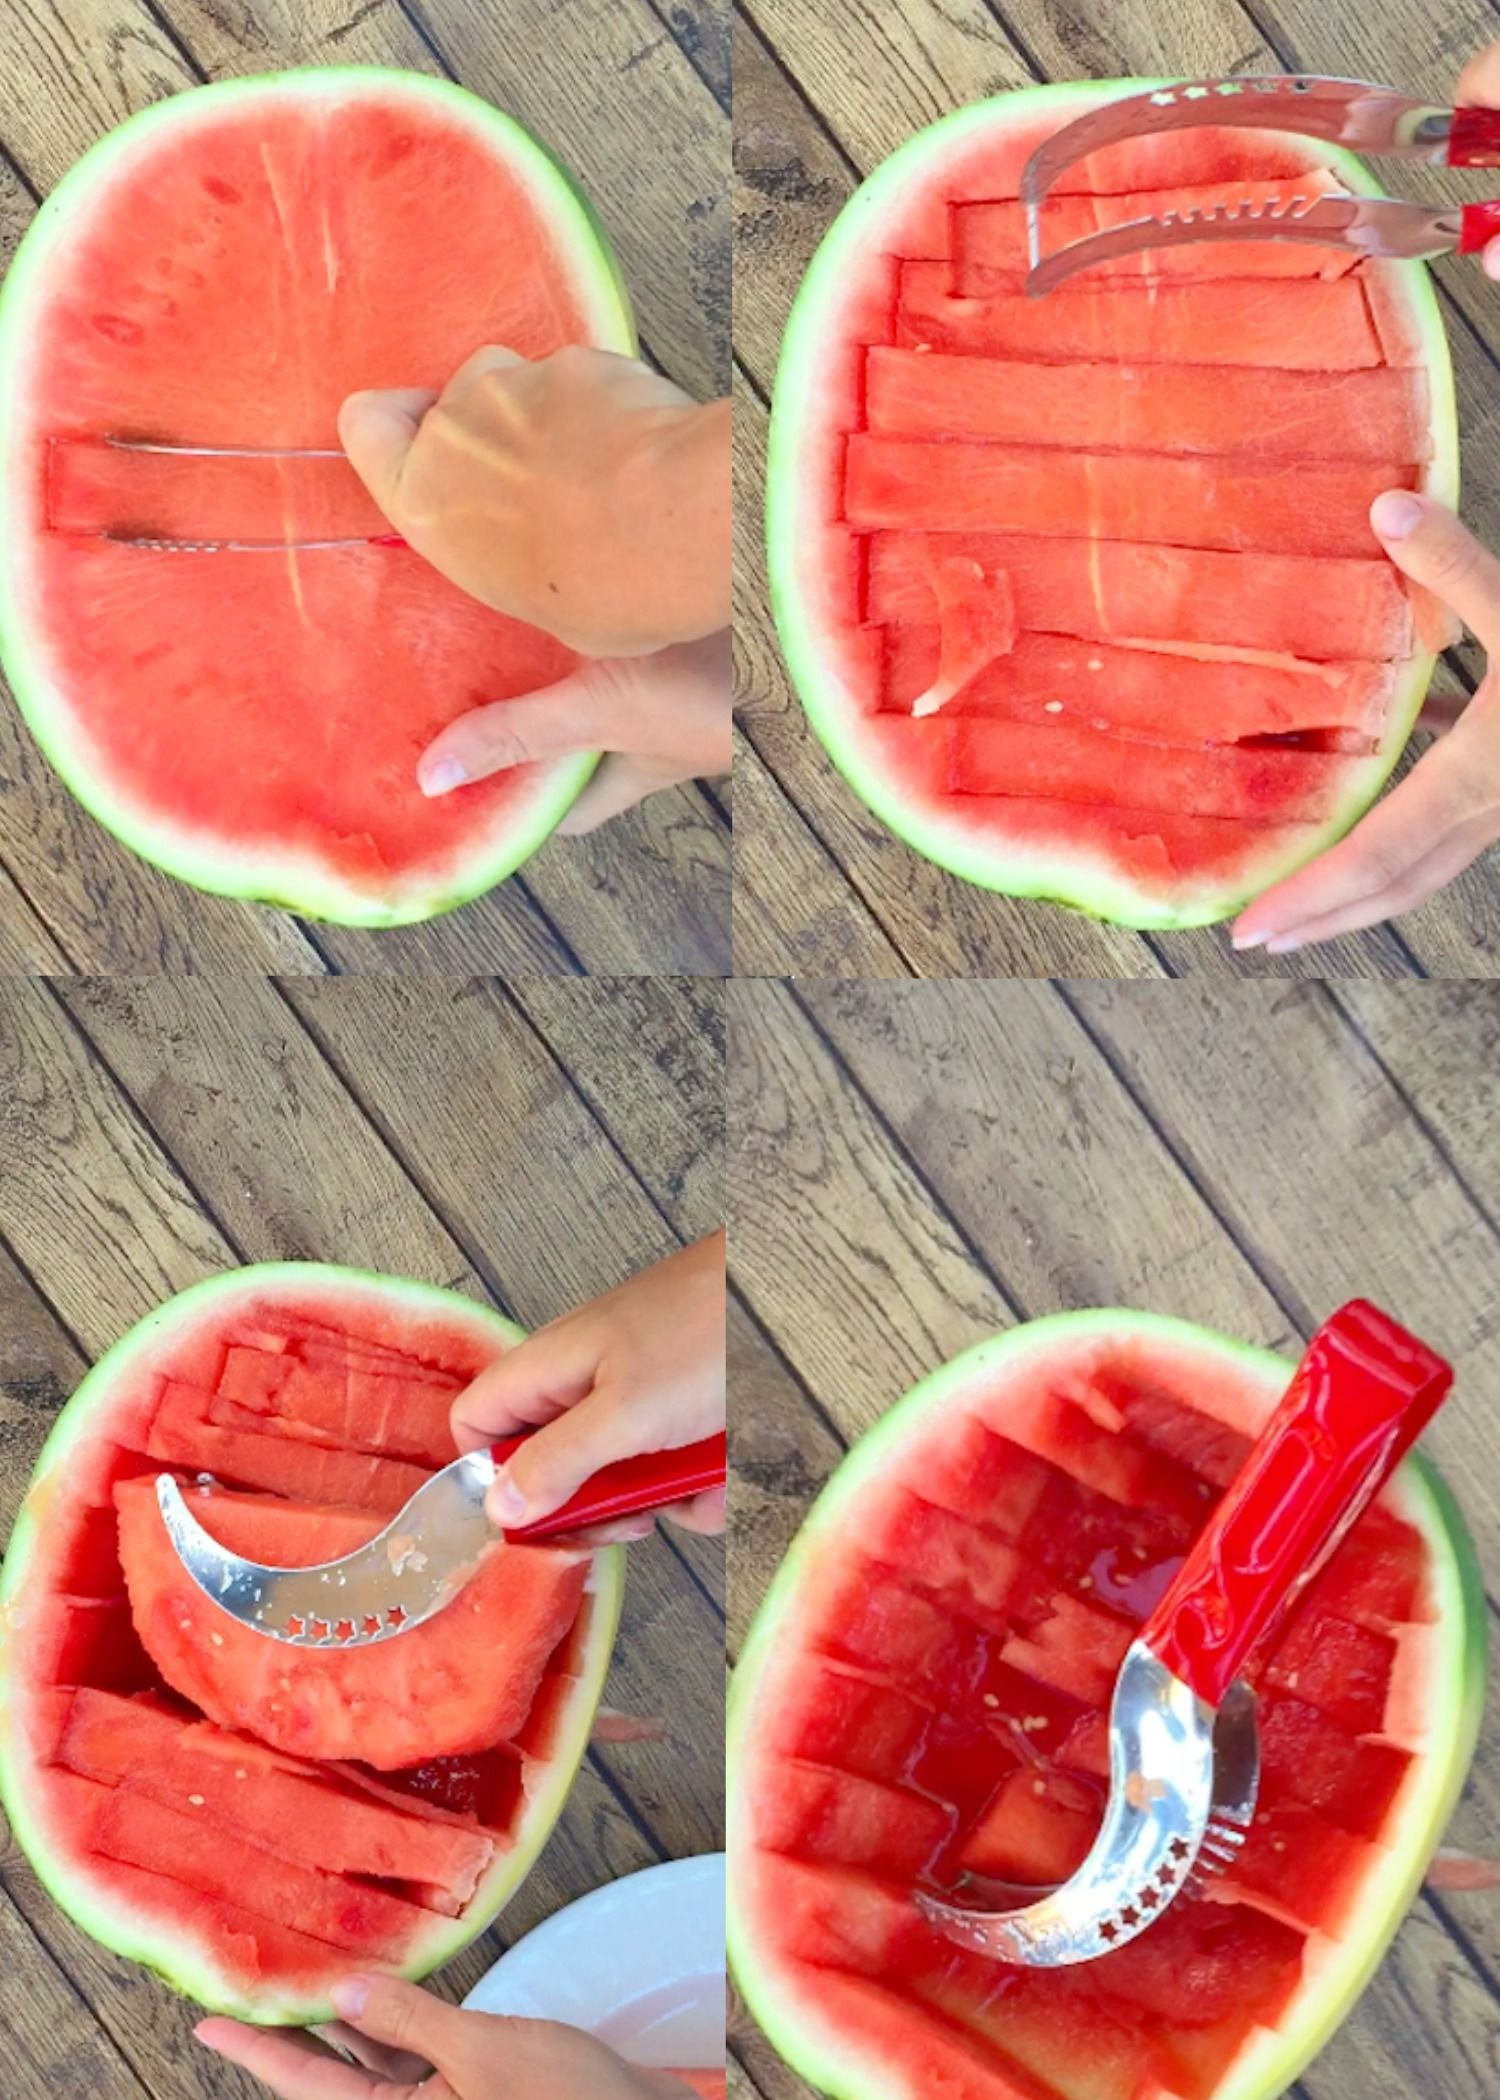 Make watermelon carving easy with this new contraption